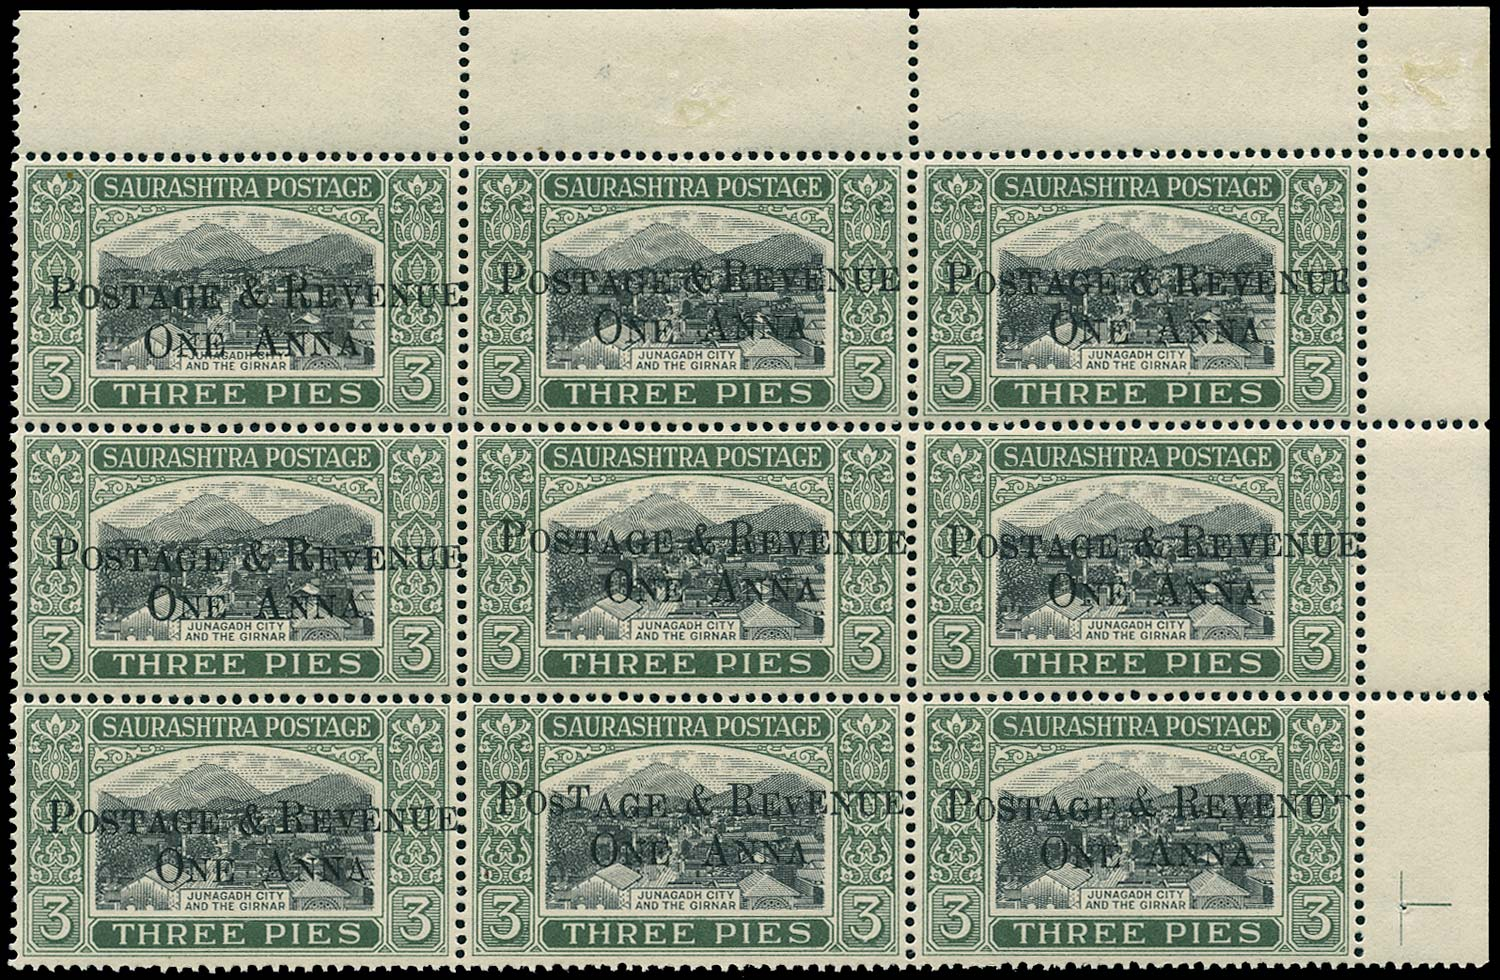 I.F.S. SORUTH 1950  SG61/var Mint 1a on 3p black and blackish green unmounted